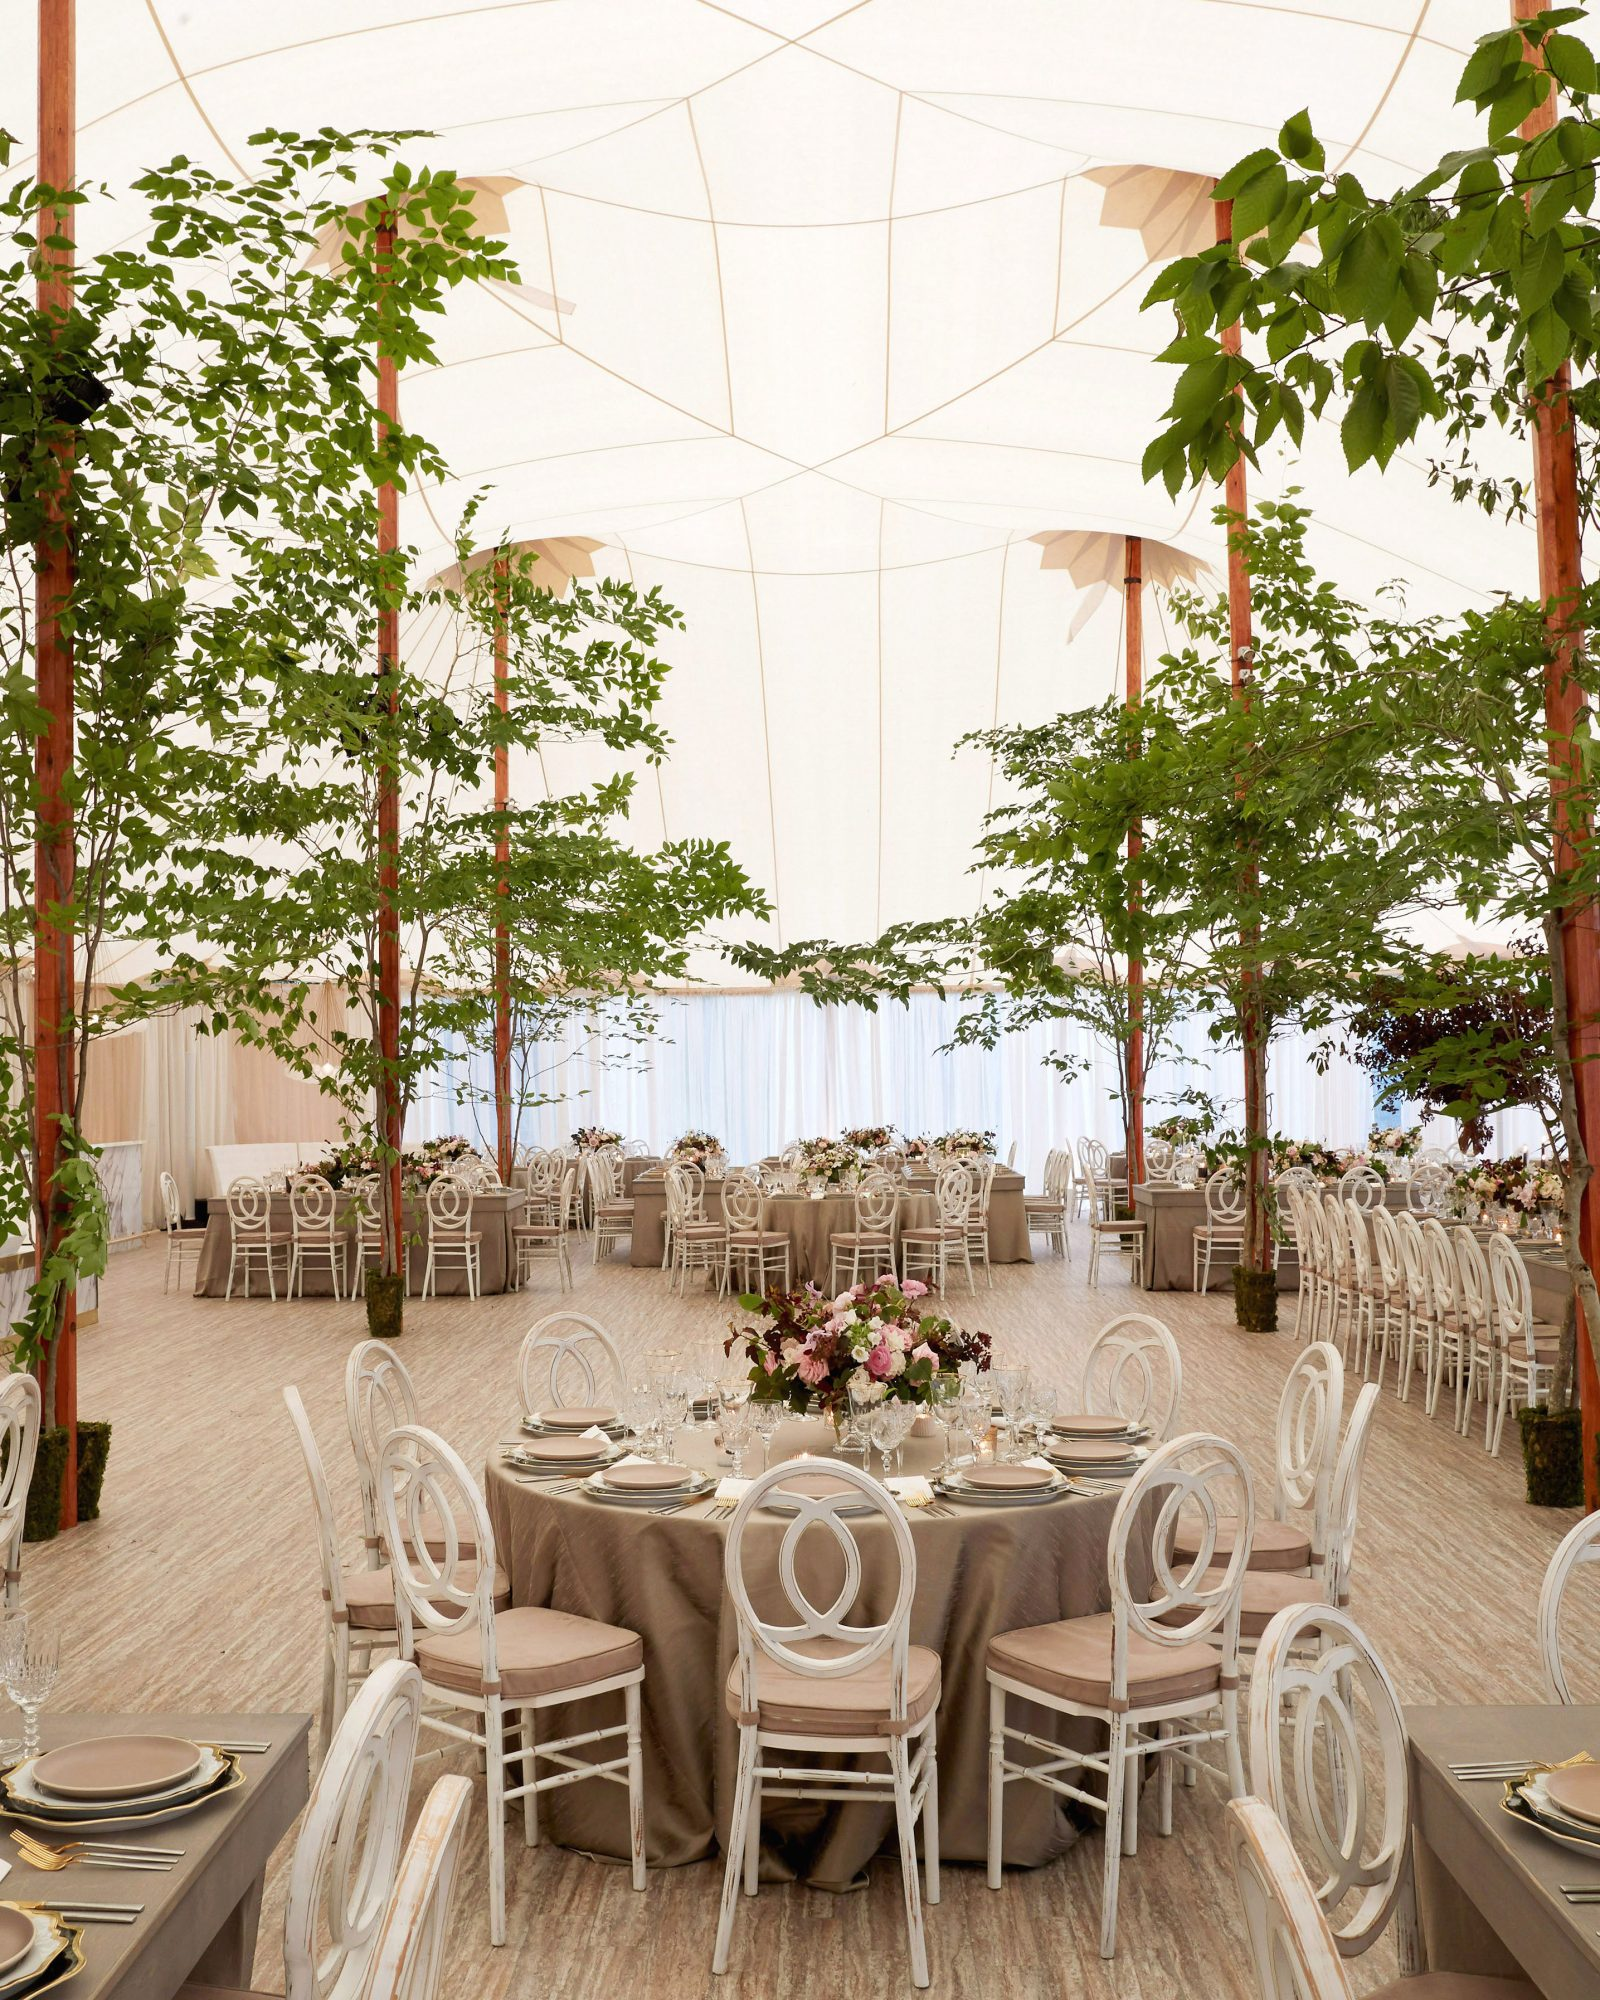 joyann jeremy wedding tent trees